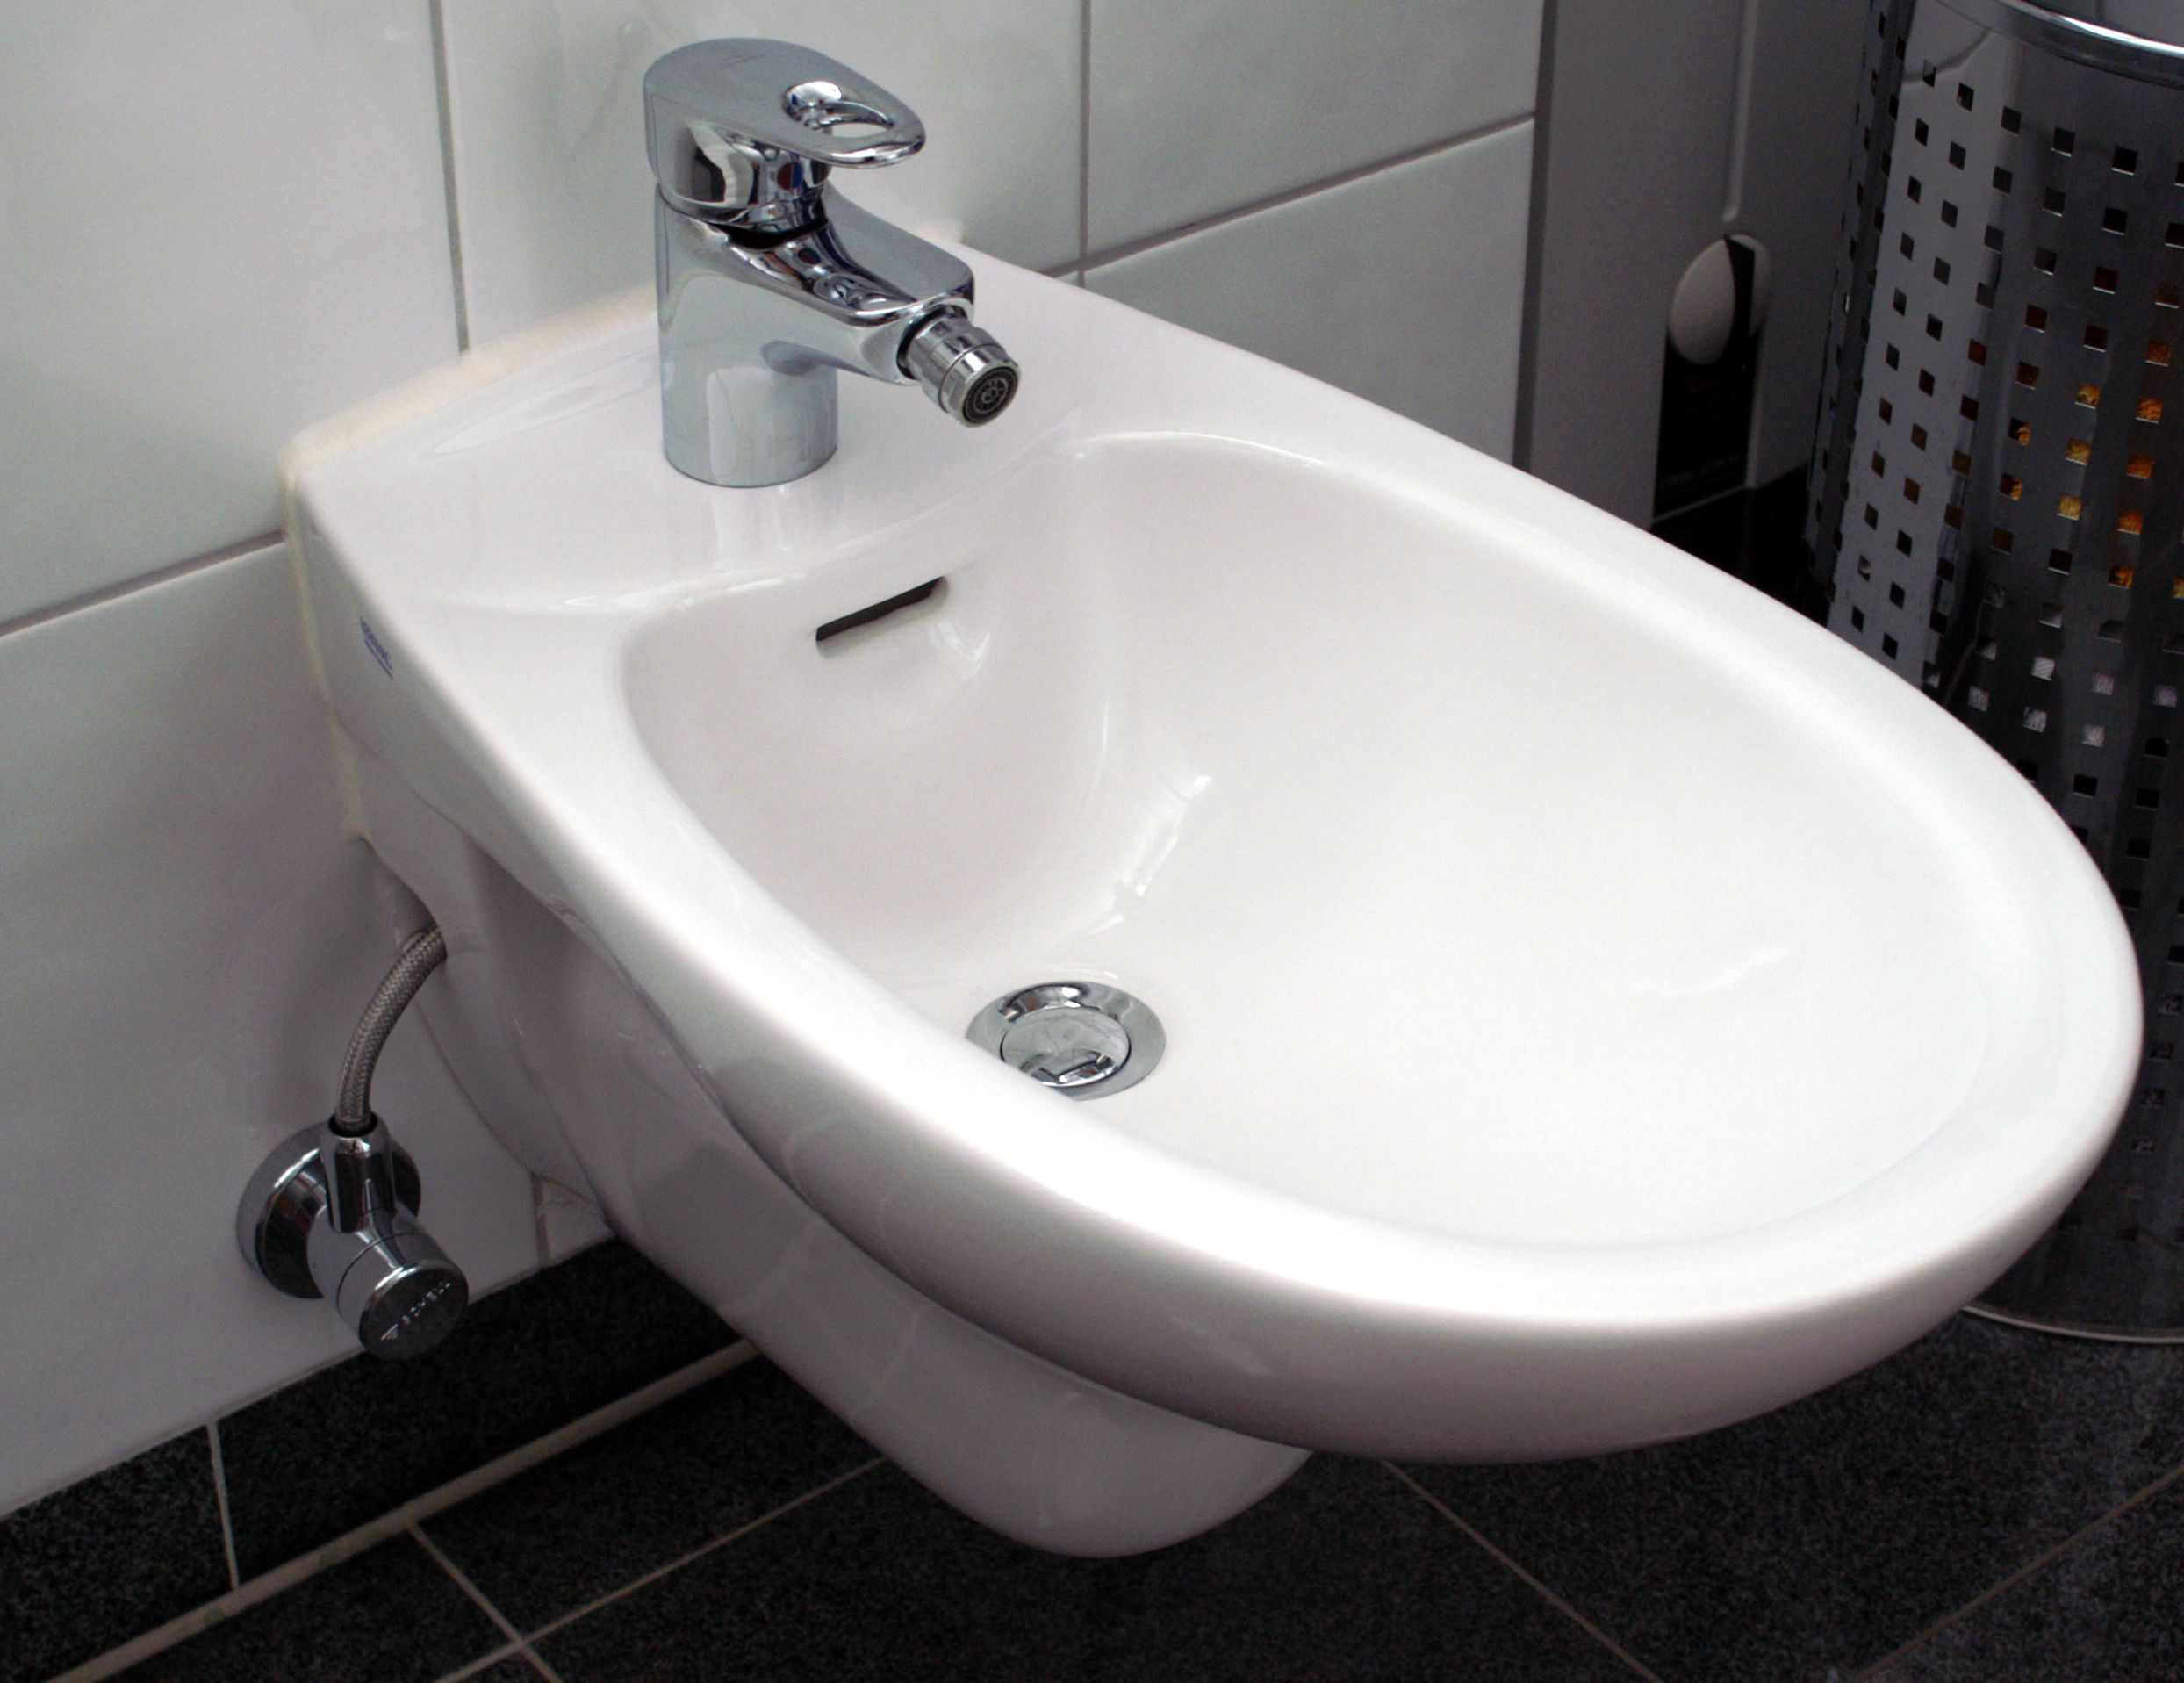 Bidet Toilet | Washroom Cleaning Tips | Pinterest | Toilet and Washroom